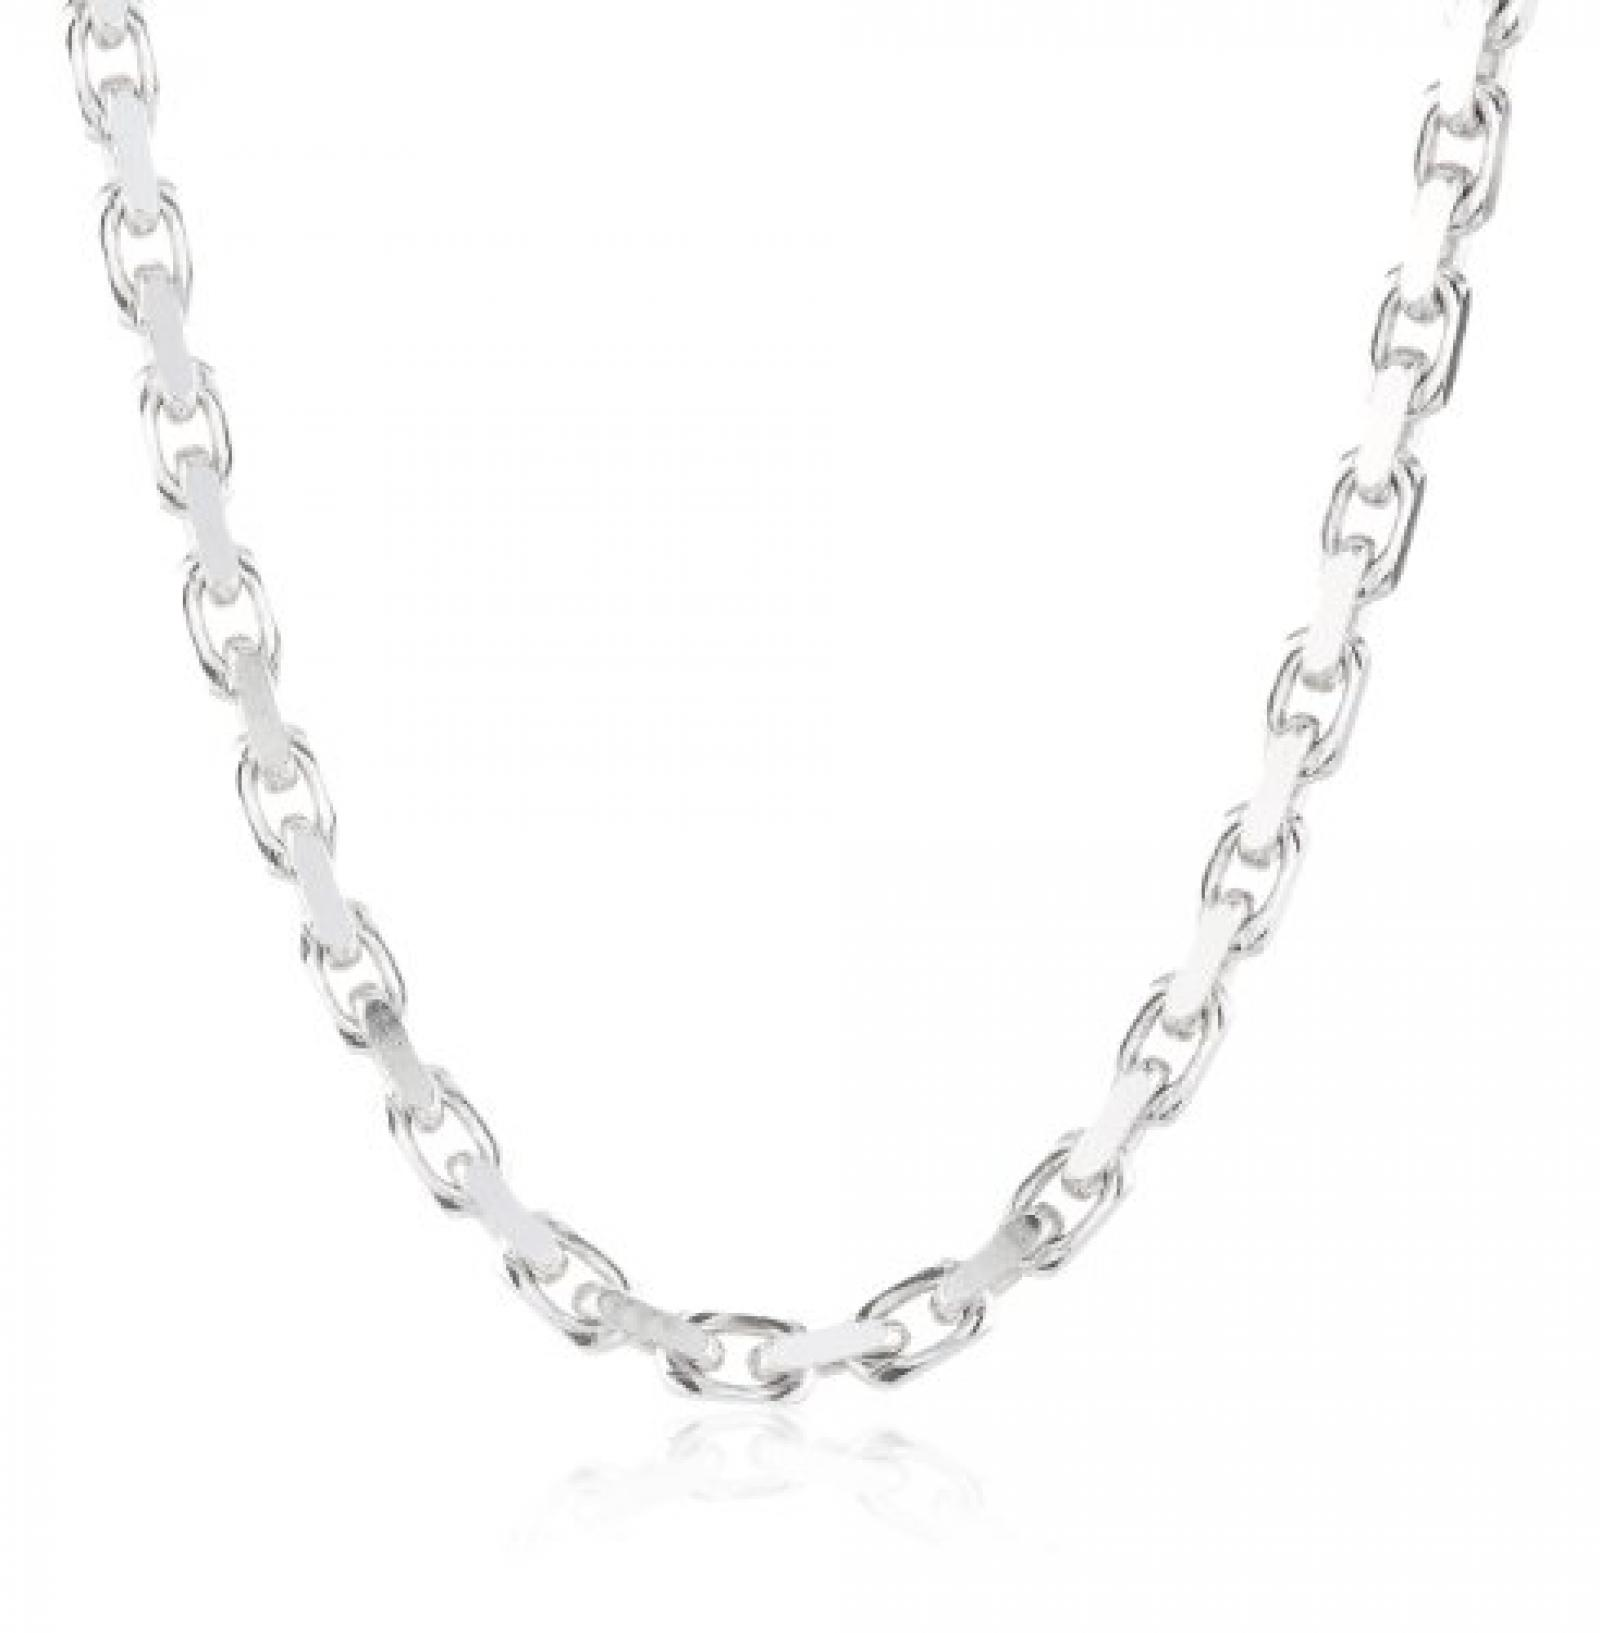 Amor Jewelry Unisex-Halskette 925 Sterling Silber 90100